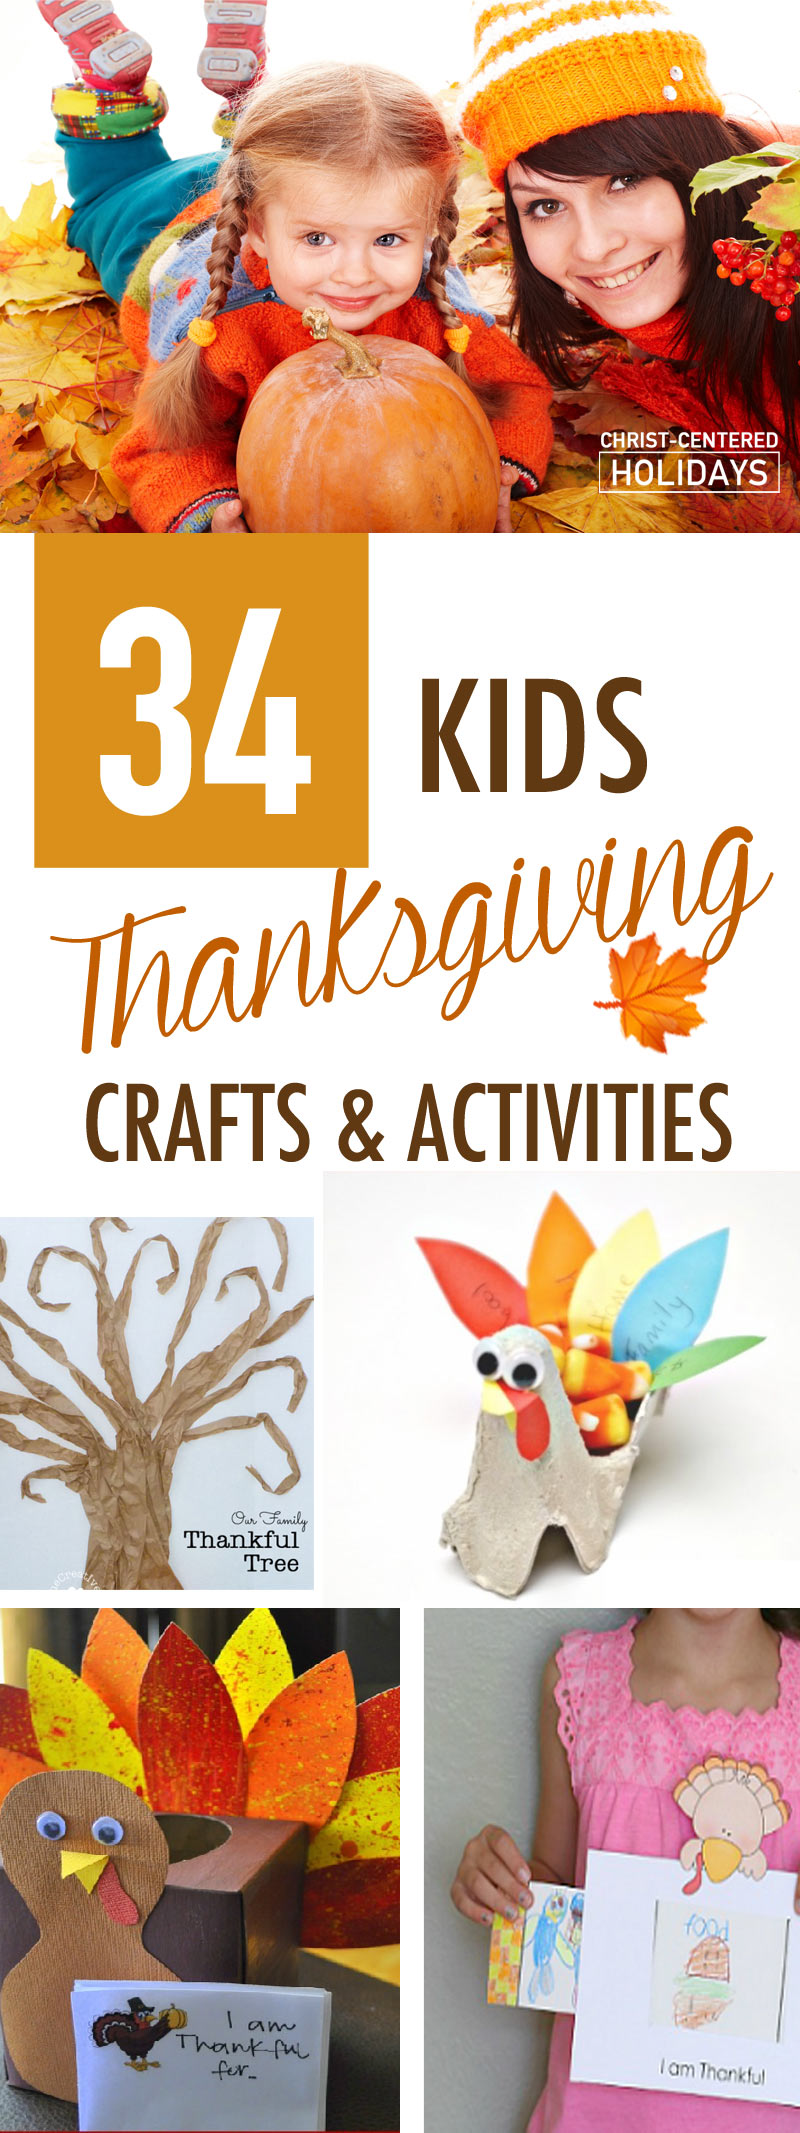 It's just a photo of Printable Thanksgiving Crafts regarding turkey